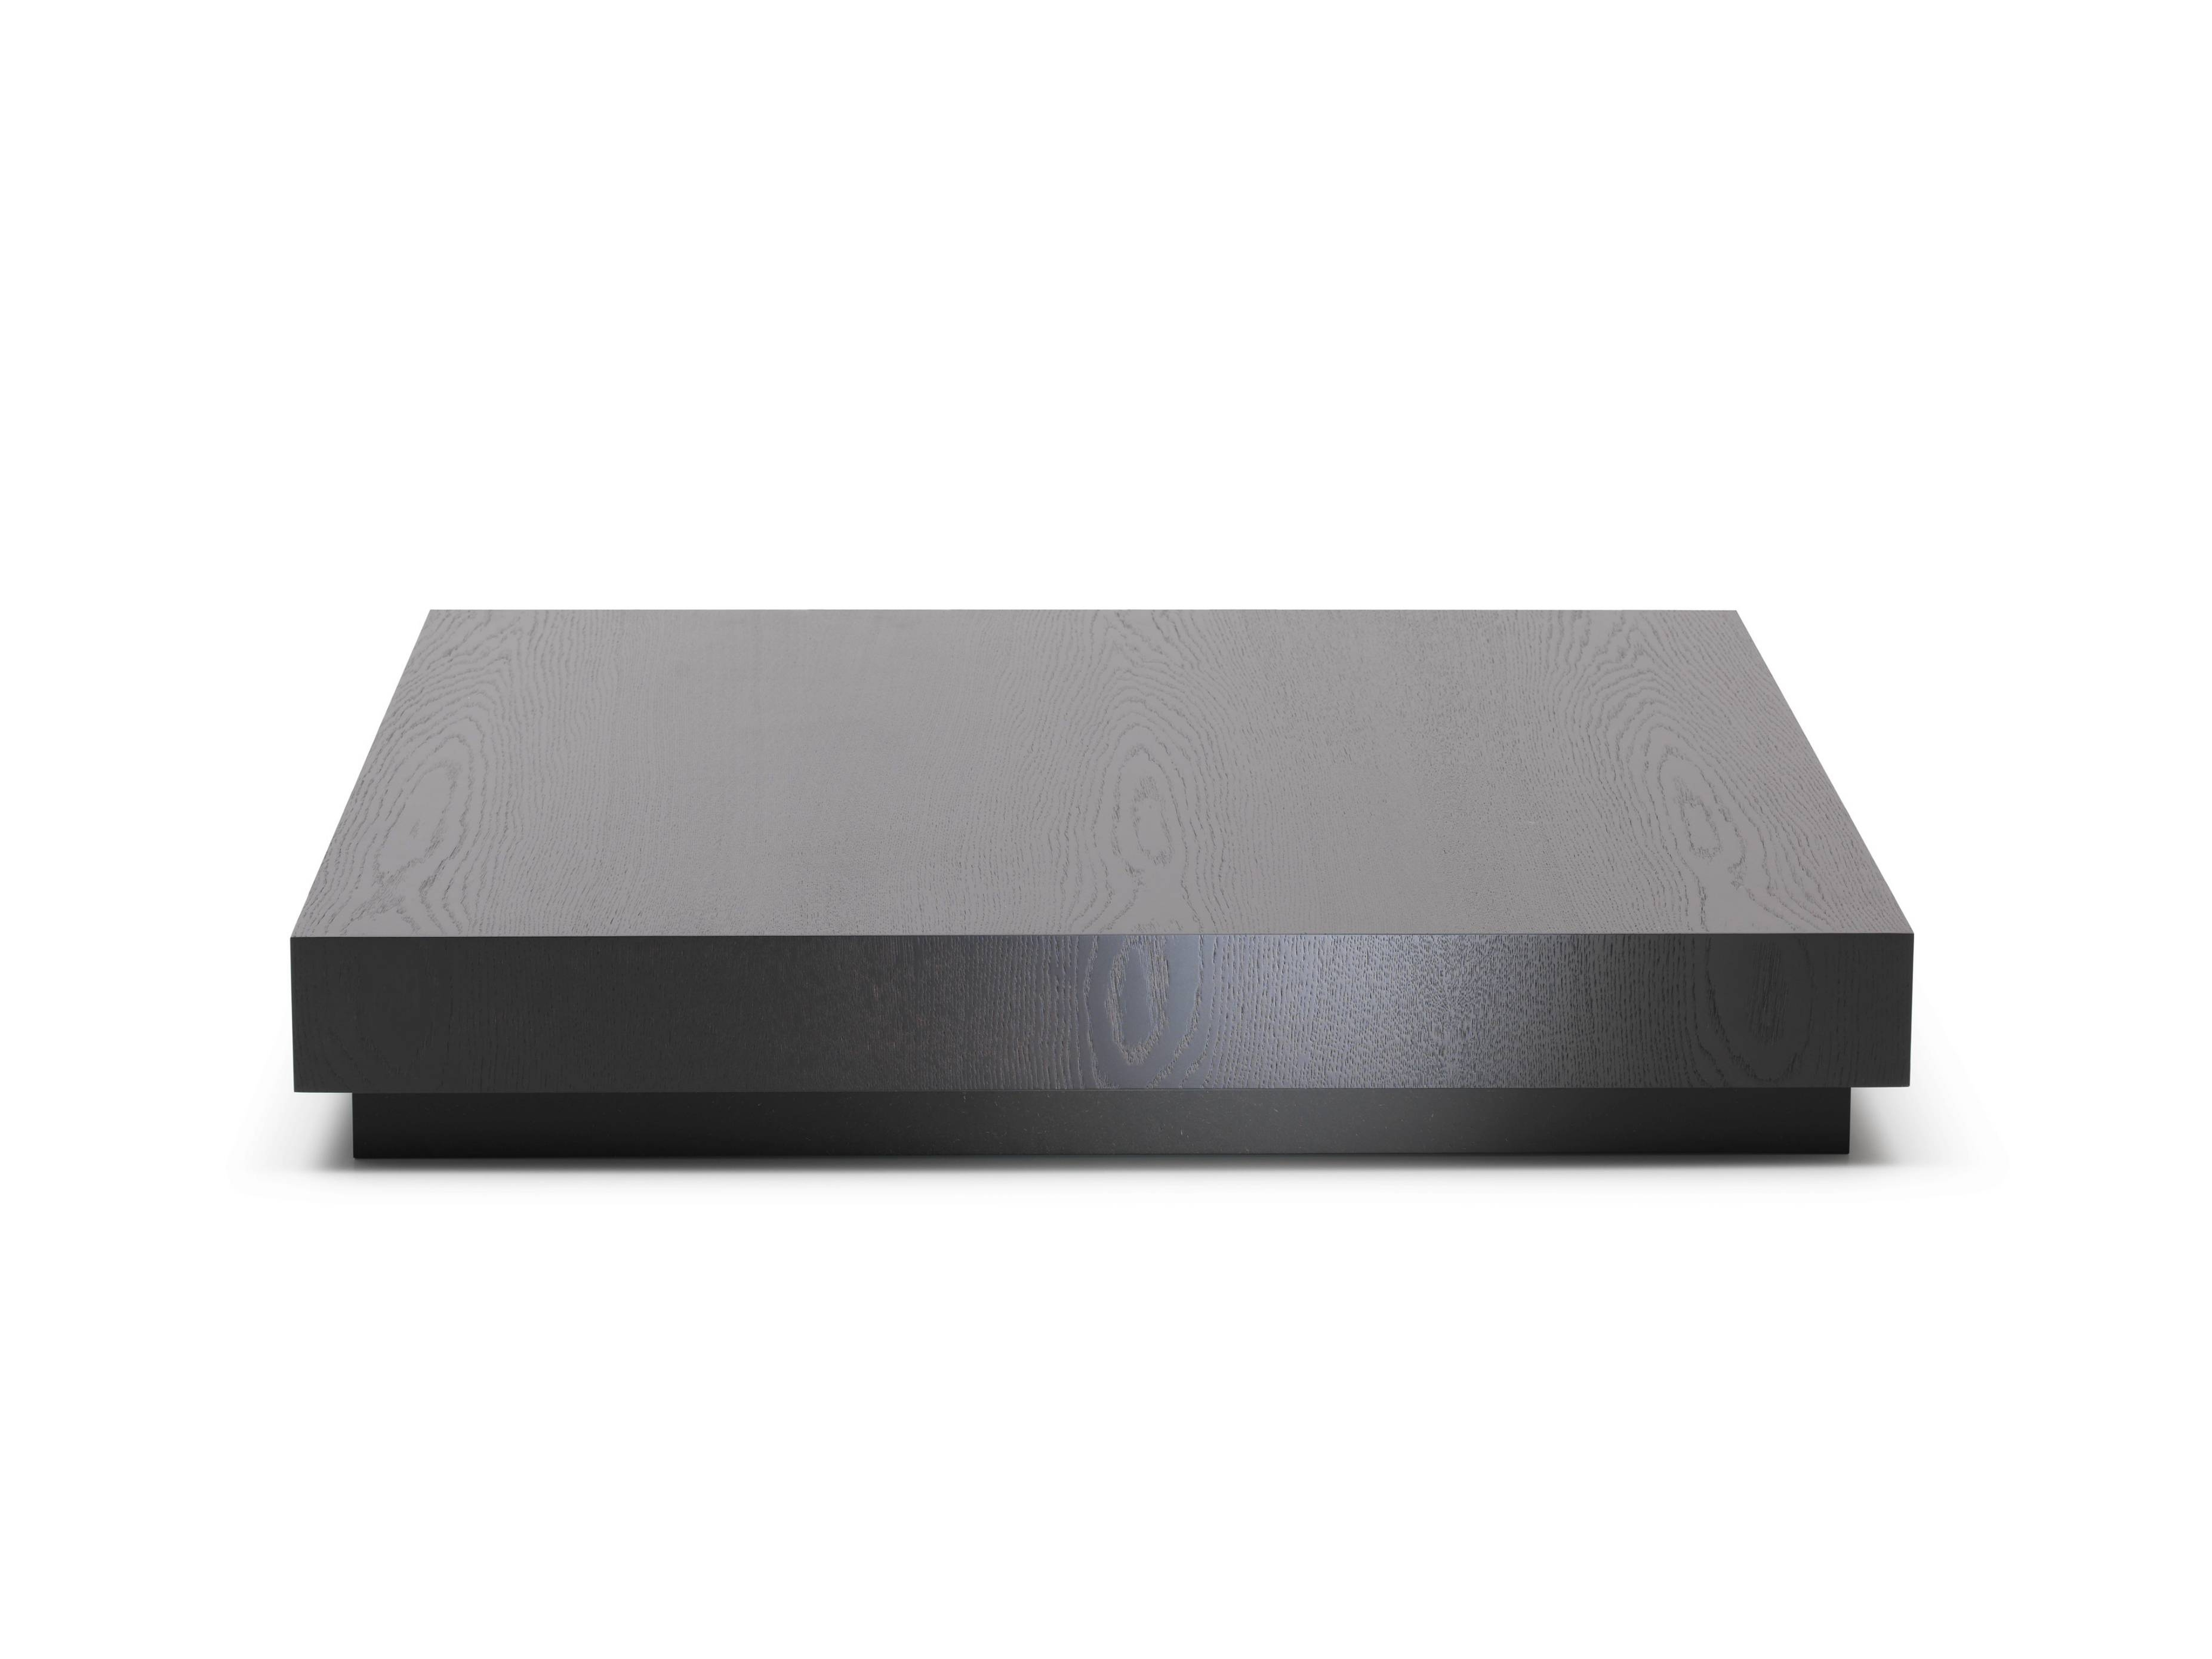 Modern Low Profile Coffee Tables | Coffee Tables Decoration intended for Large Low Square Coffee Tables (Image 27 of 30)